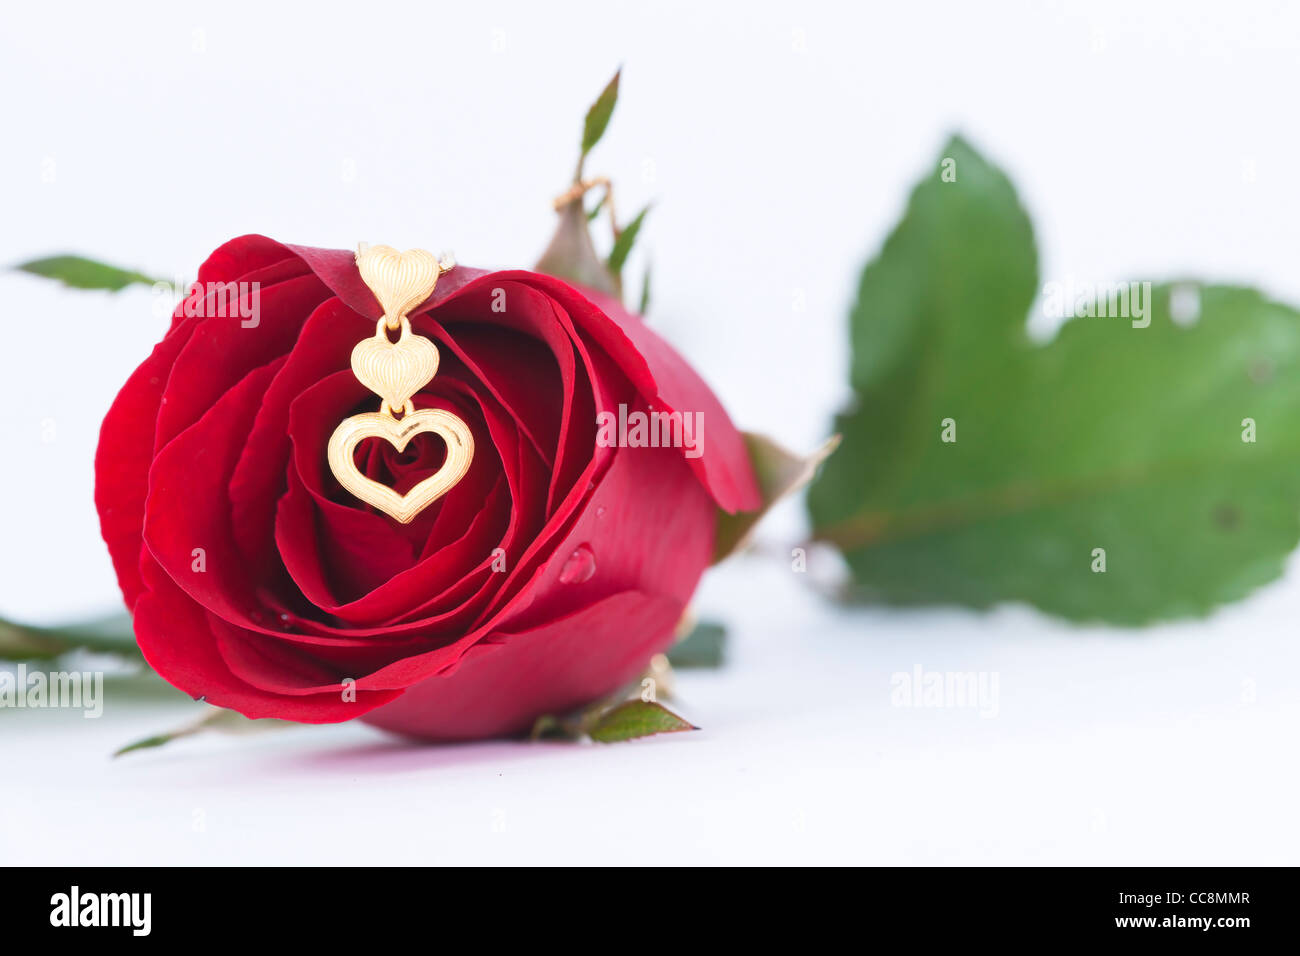 Gold heart pendant and red rose on white background stock photo gold heart pendant and red rose on white background mozeypictures Image collections